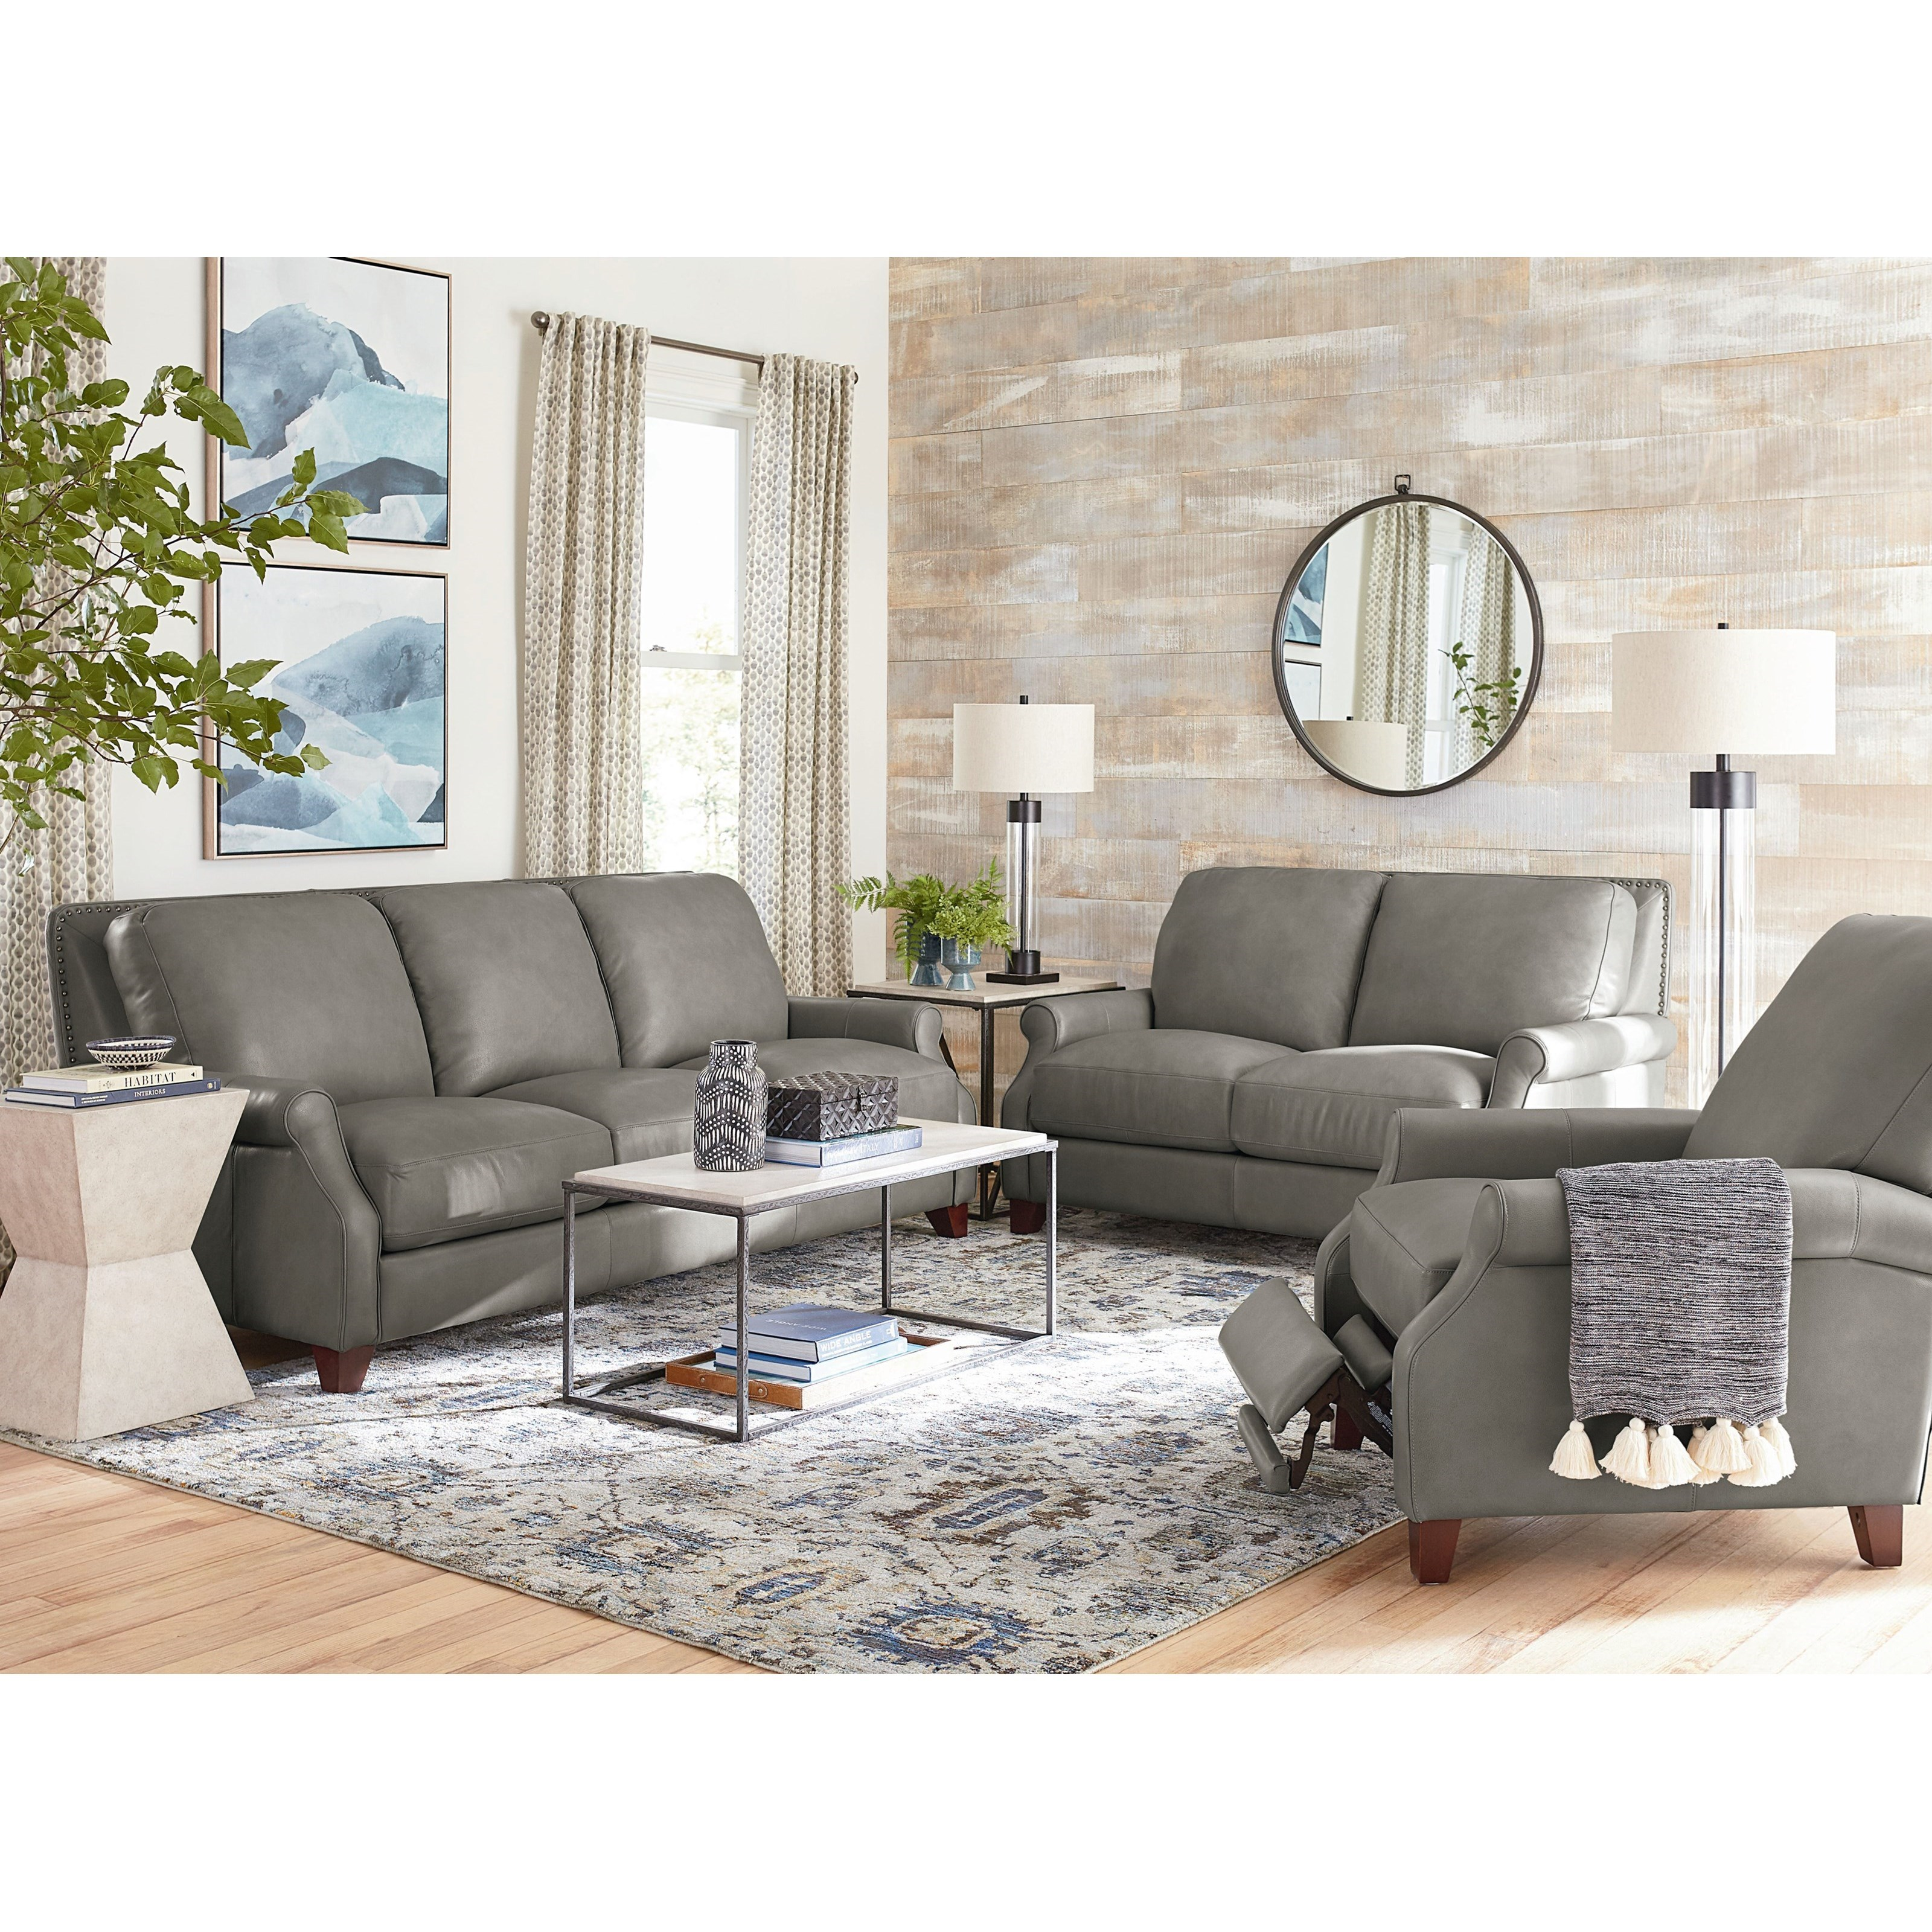 Greyson Living Room Group by Bassett at Esprit Decor Home Furnishings